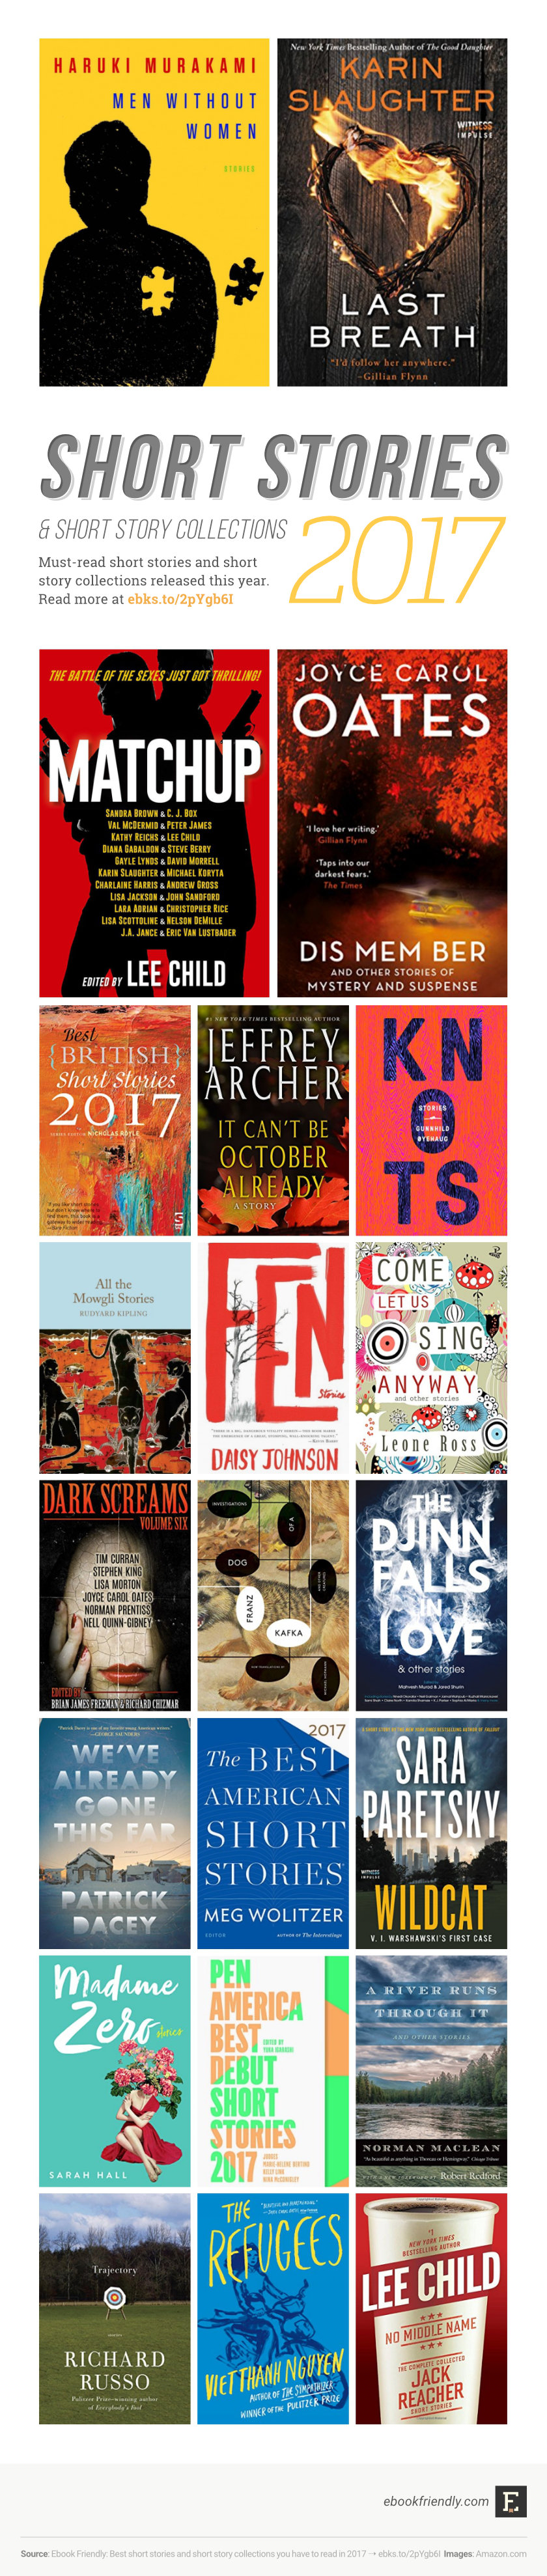 Best short stories and short story collections of 2017 #infographic